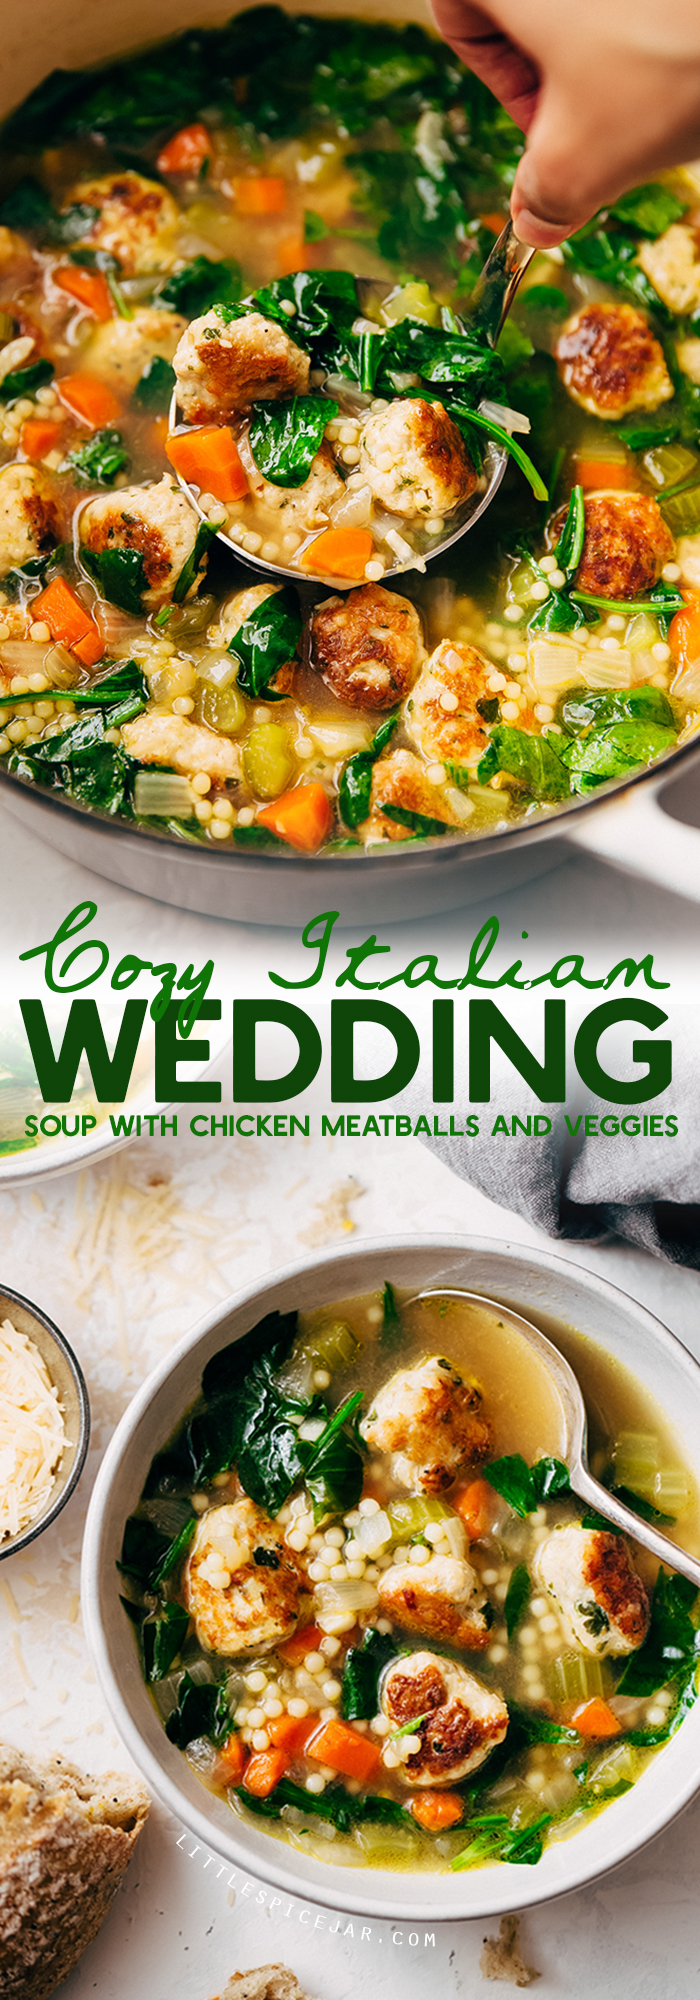 Italian Wedding Soup - an easy homemade soup with tender chicken meatballs and tons of veggies and pasta! So hearty and comforting! #italianweddingsoup #chickenmeatballsoup #chickennoodlesoup | Littlespicejar.com